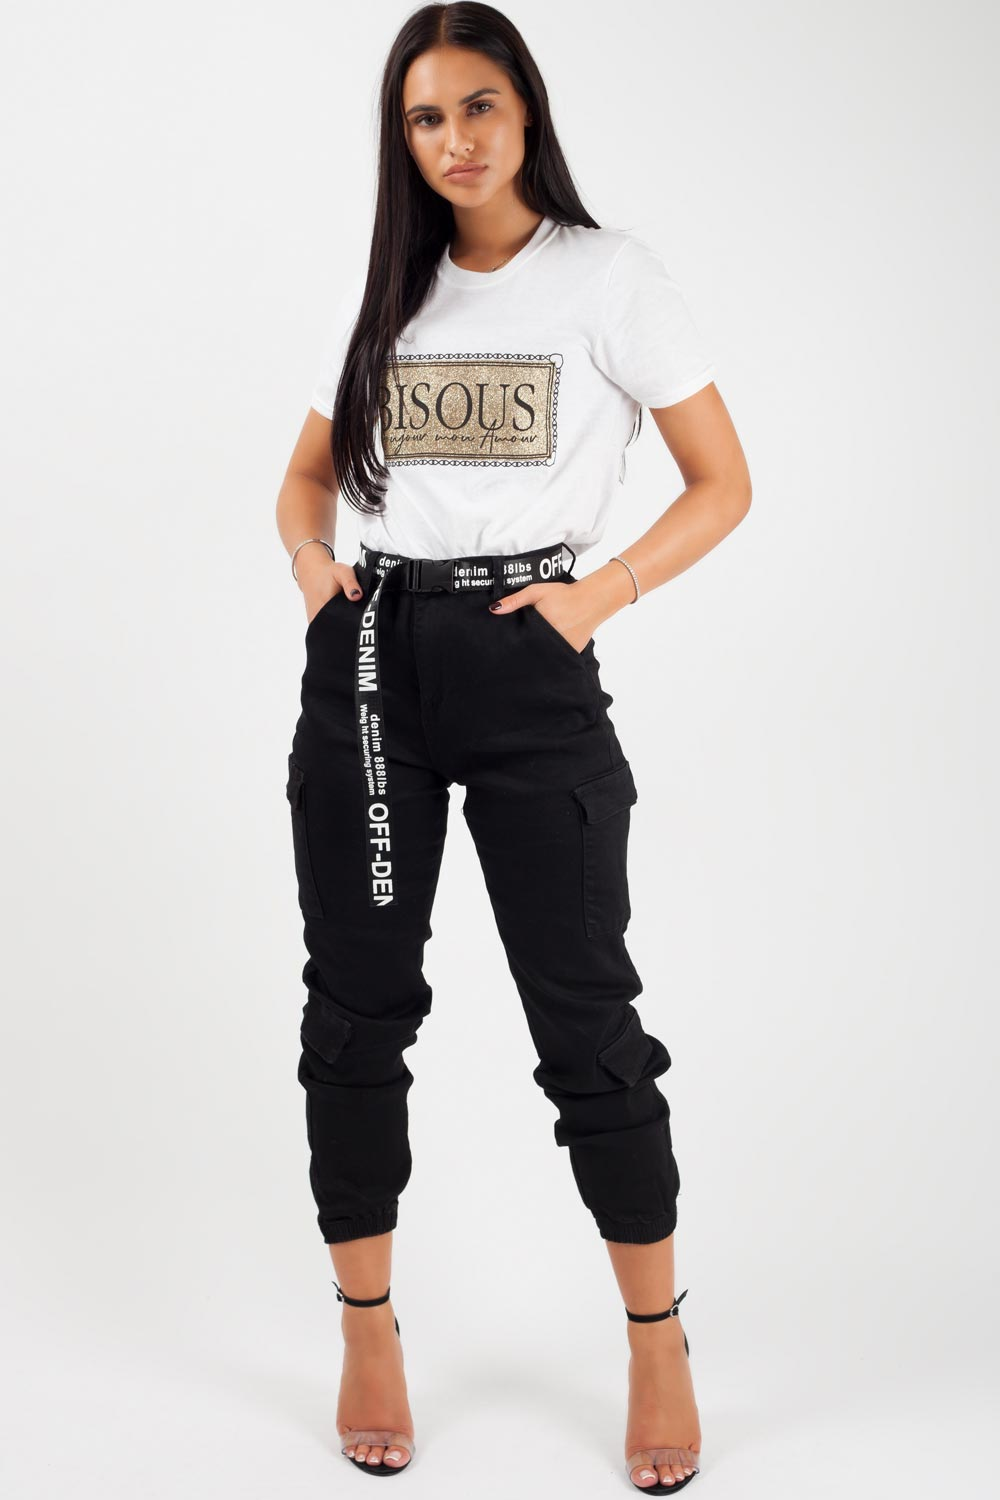 black cargo trousers womens uk